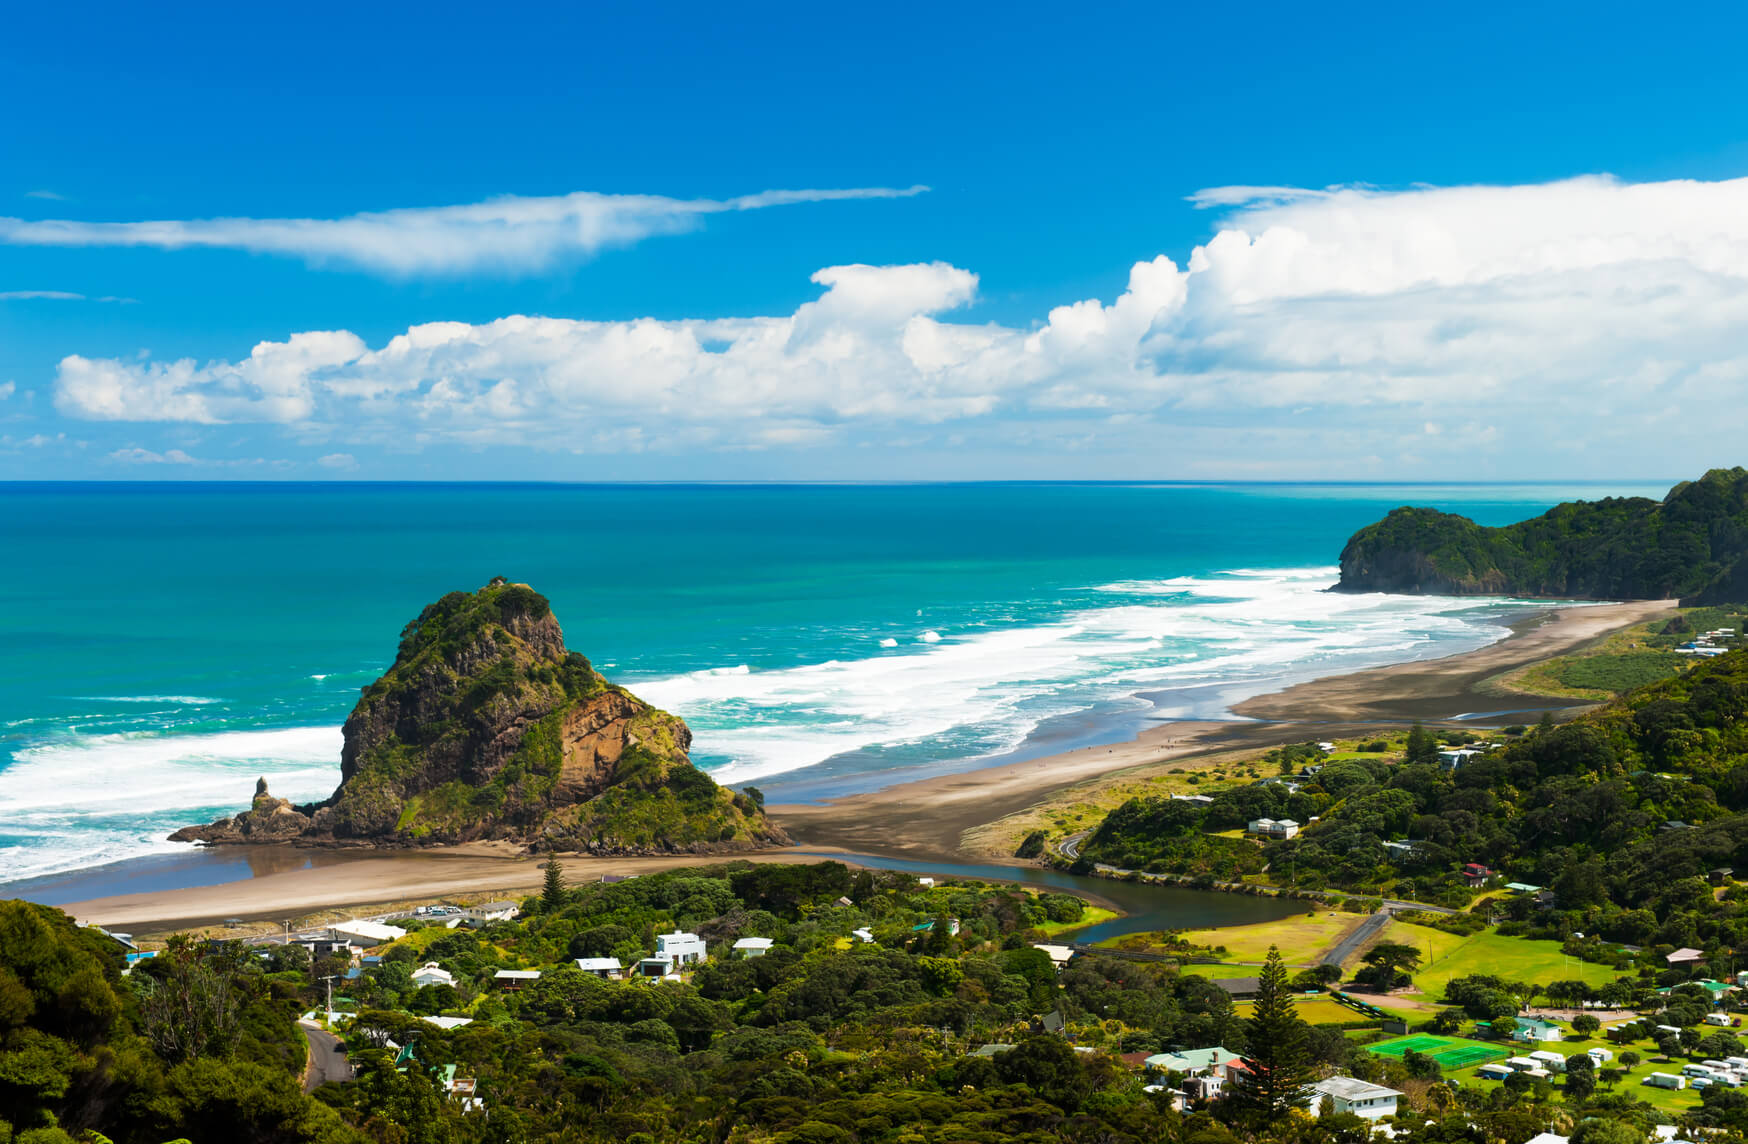 Los Angeles to Auckland, New Zealand for only $663 roundtrip